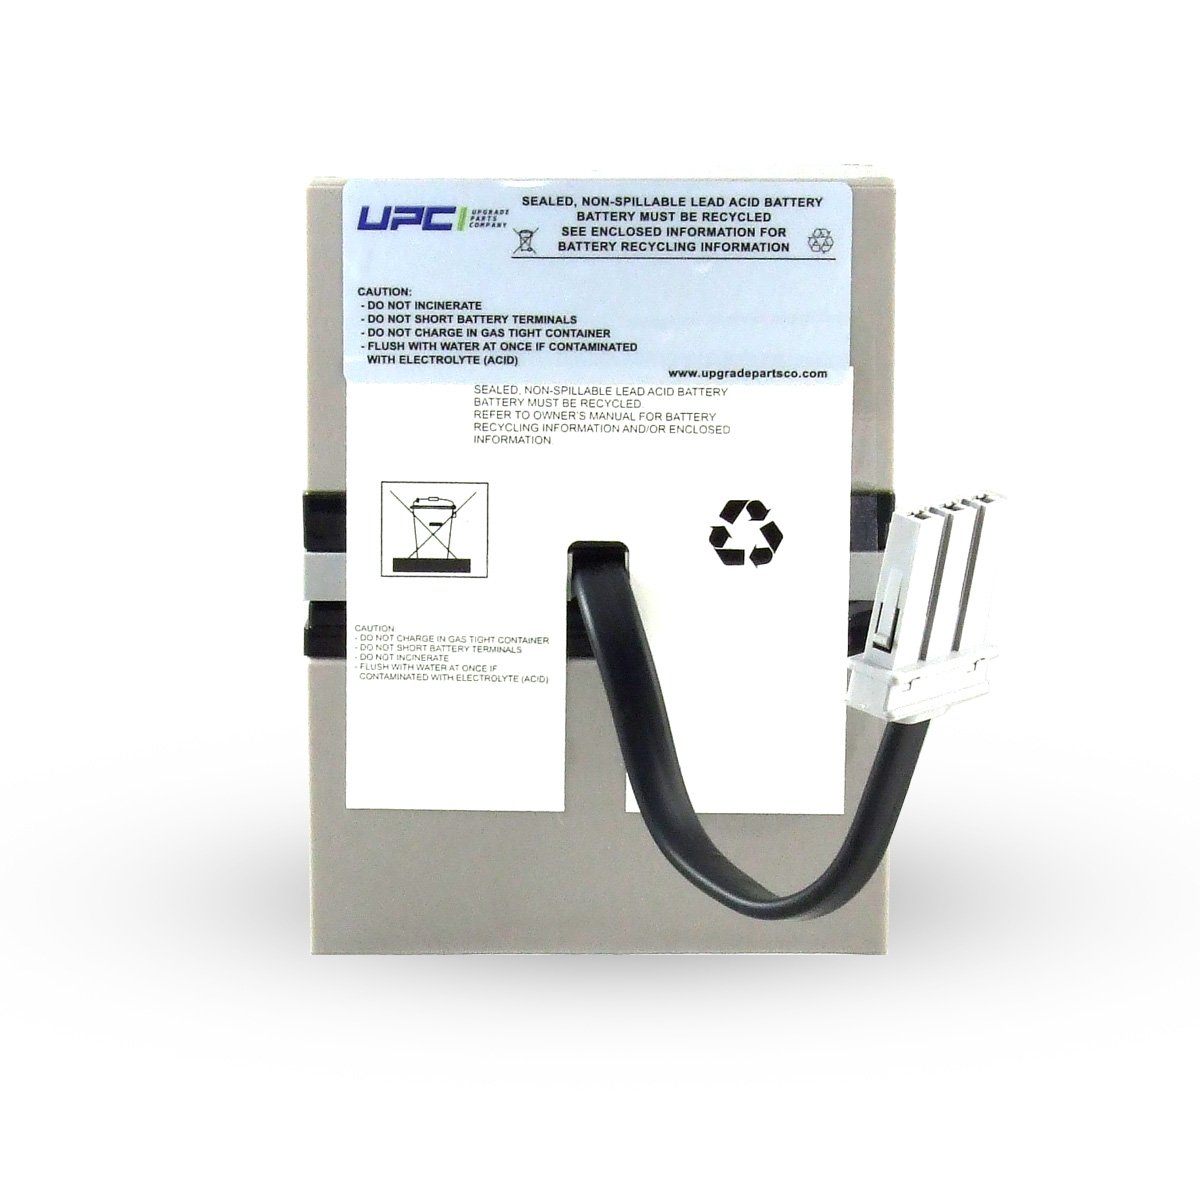 UPC RBC33 Replacement Battery Cartridge